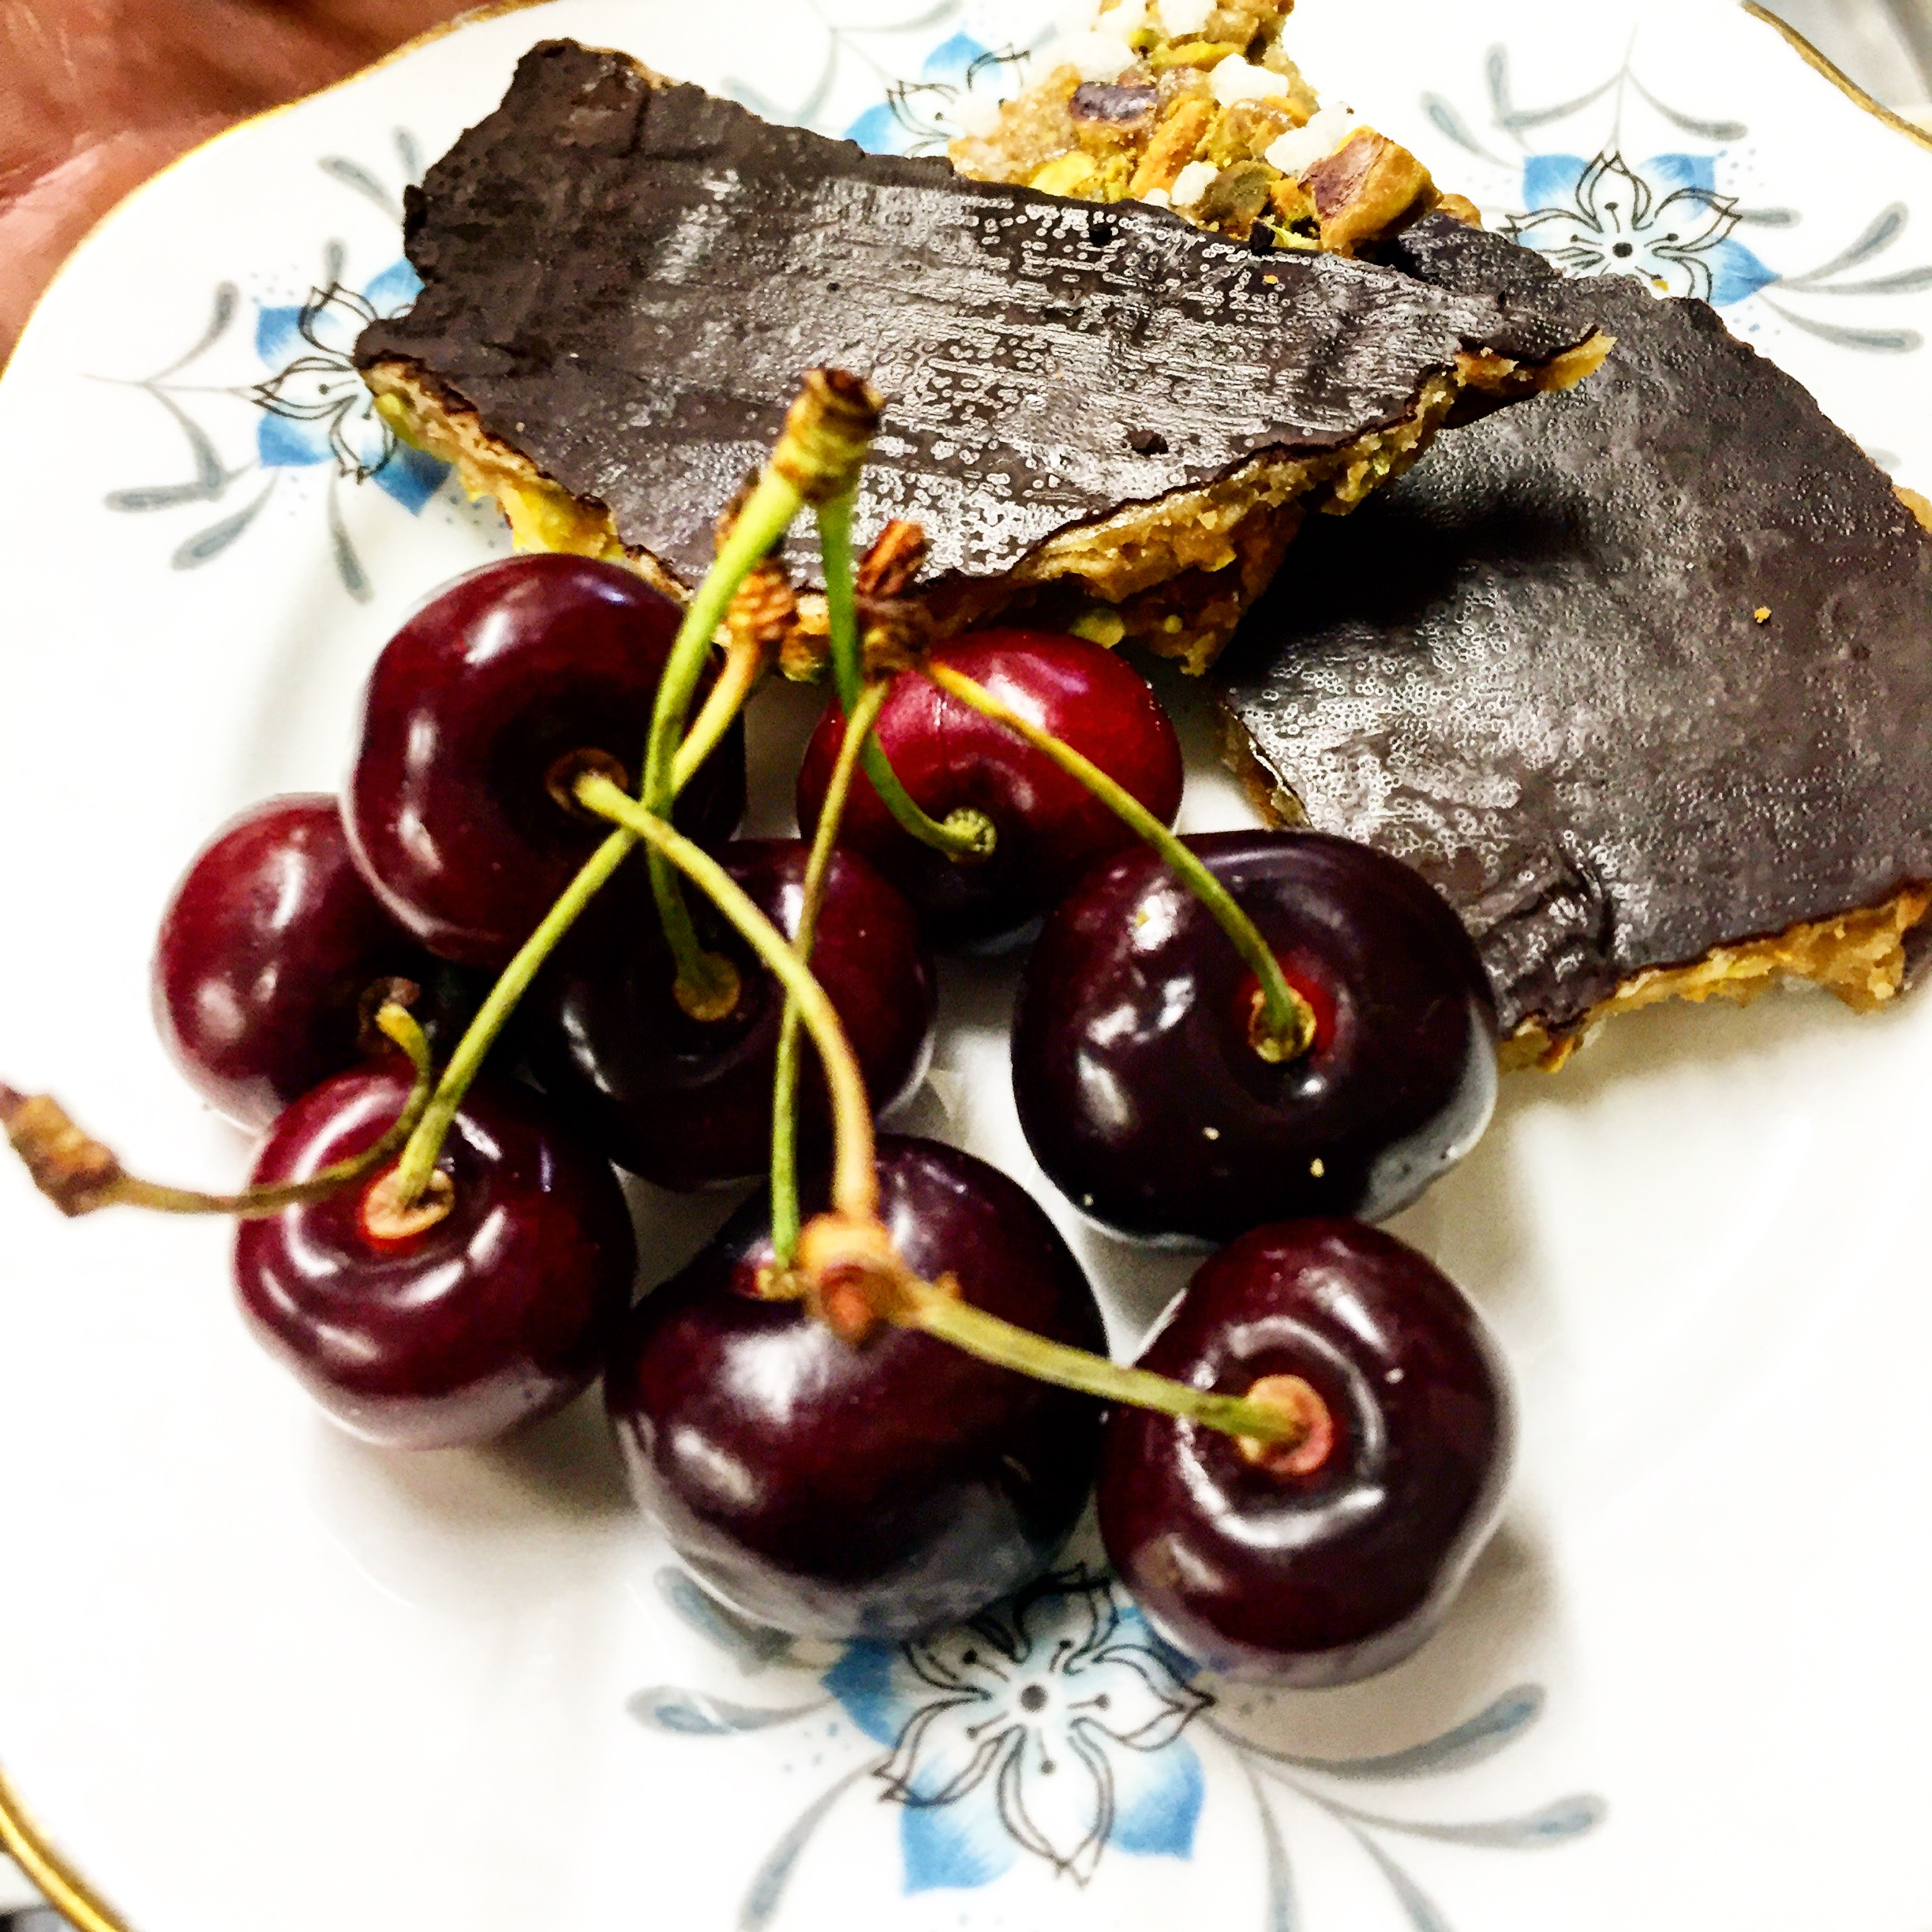 From the treat section of our menu, cherries + pistachio chocolate brittle.